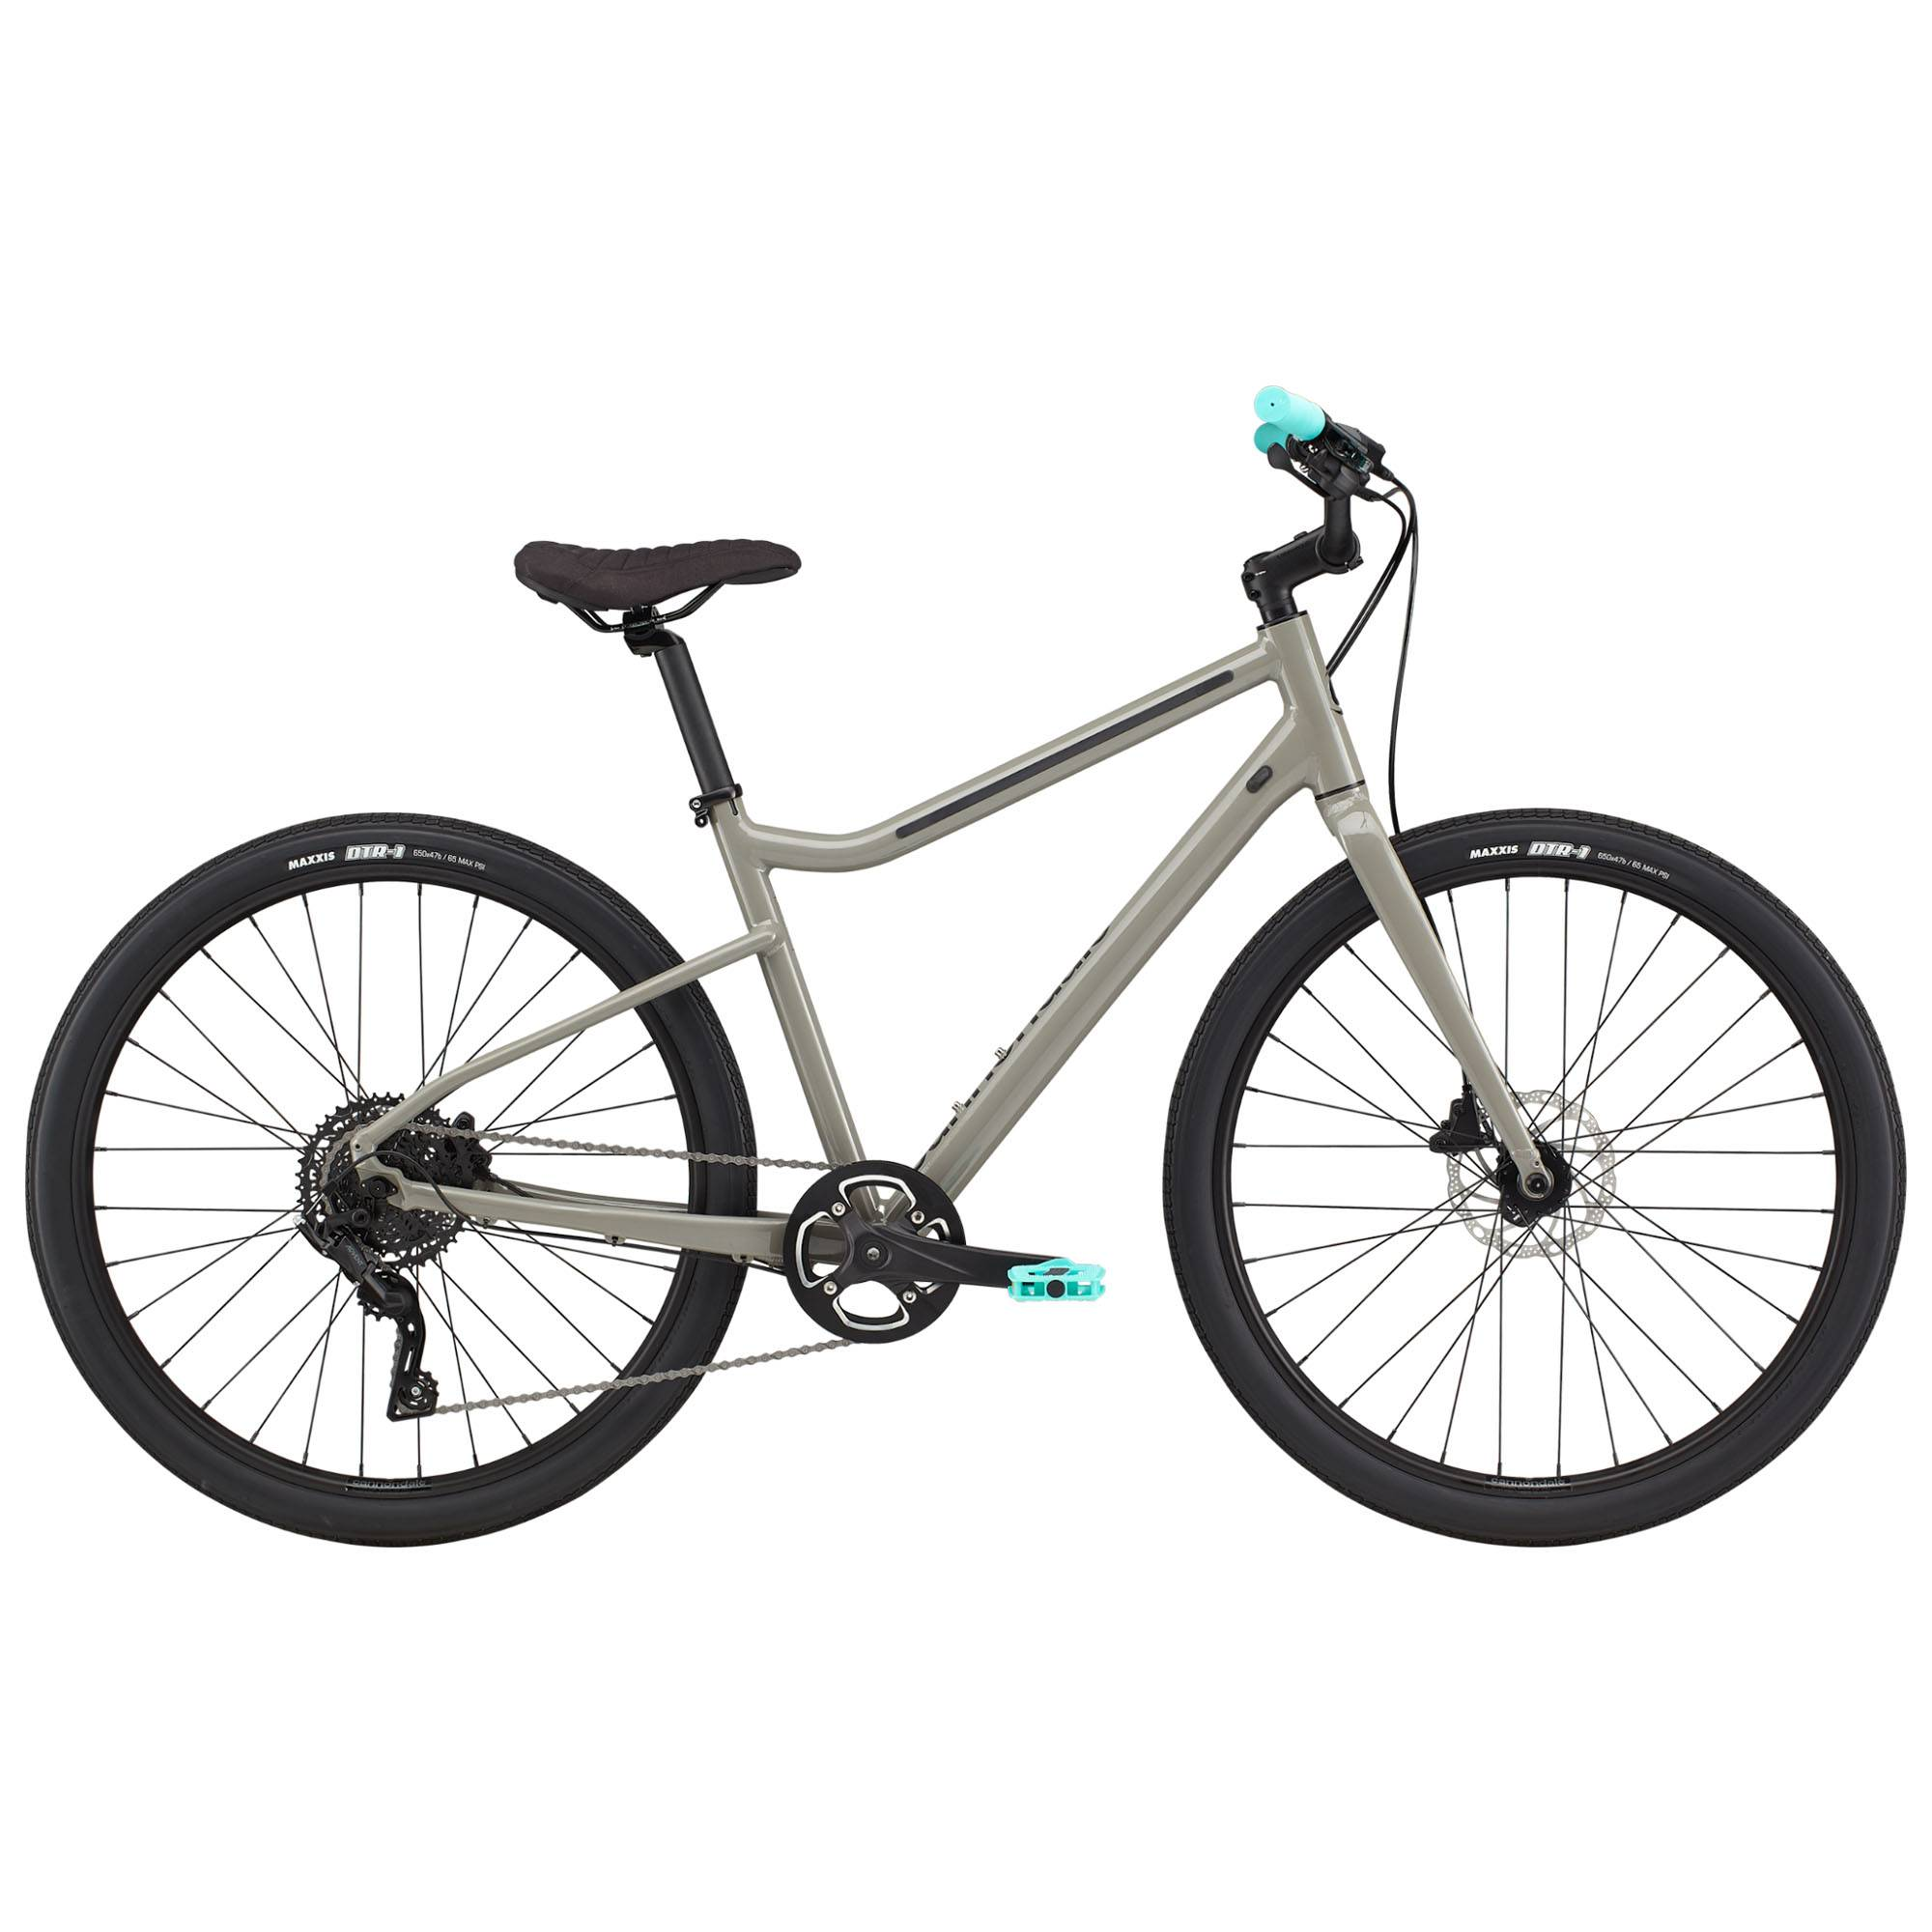 Cannondale Men's Treadwell 2 Urban Bike '21  - Stealth Grey - Size: Medium